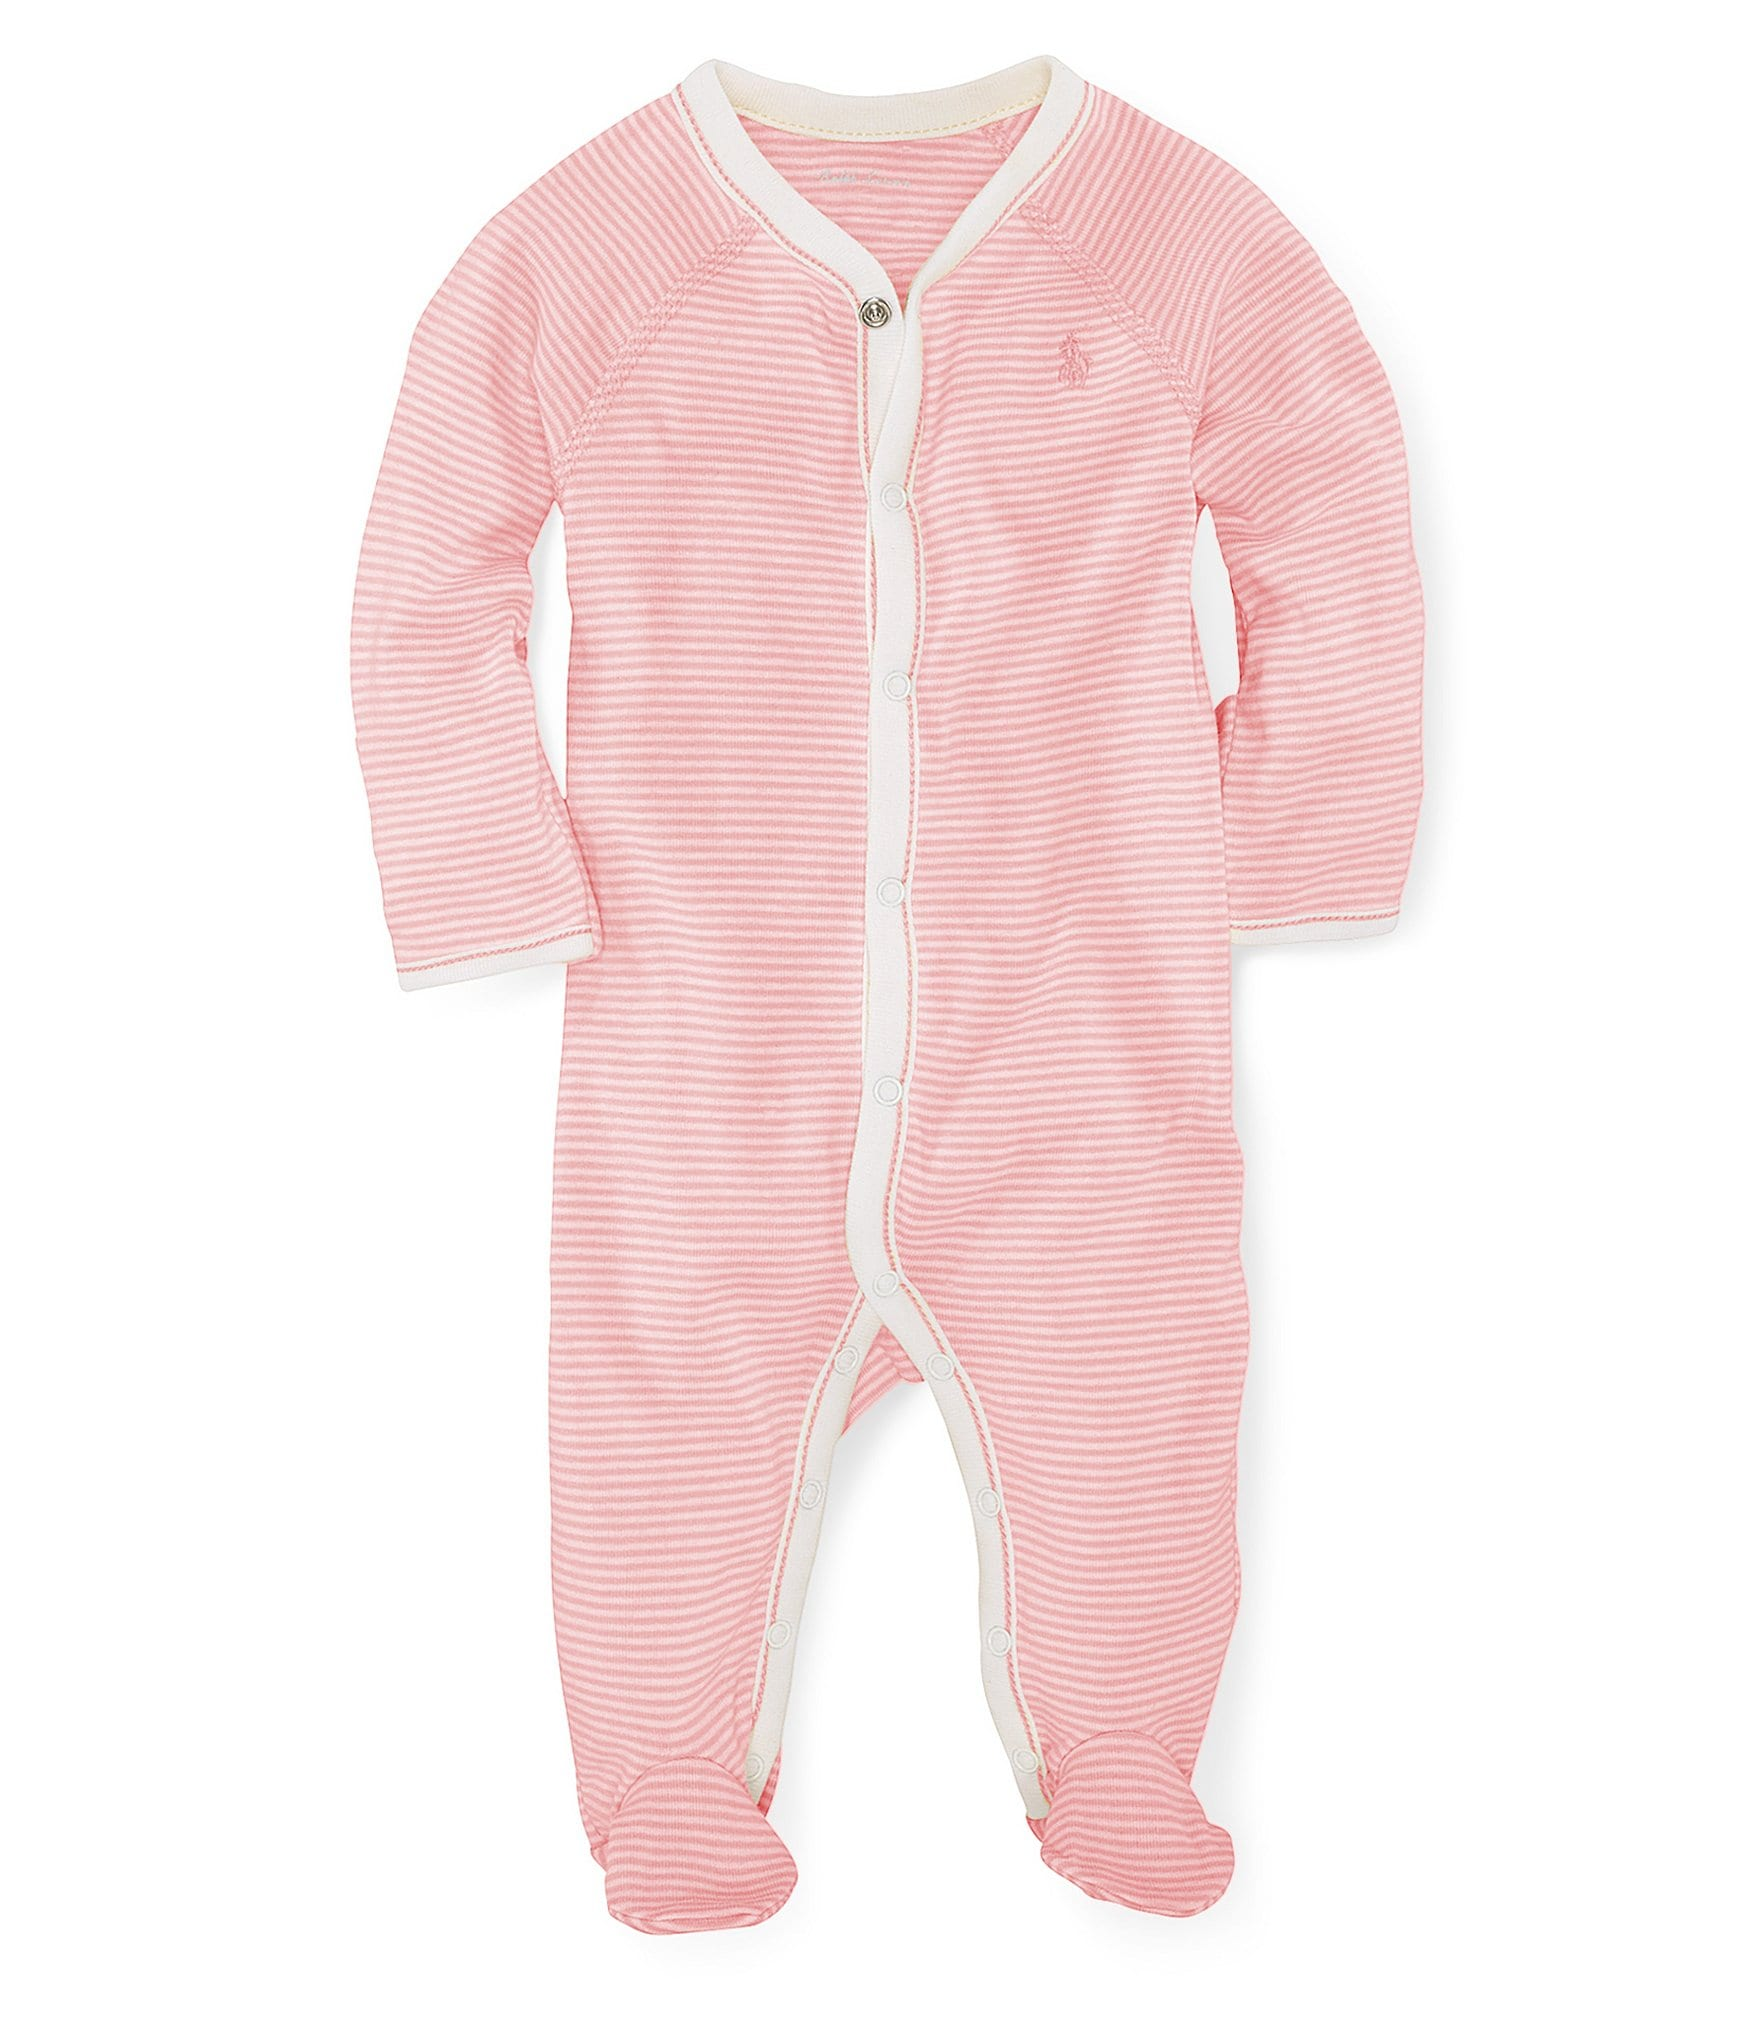 ca8d09e2d9f7 Ralph Lauren Baby Girl Clothing